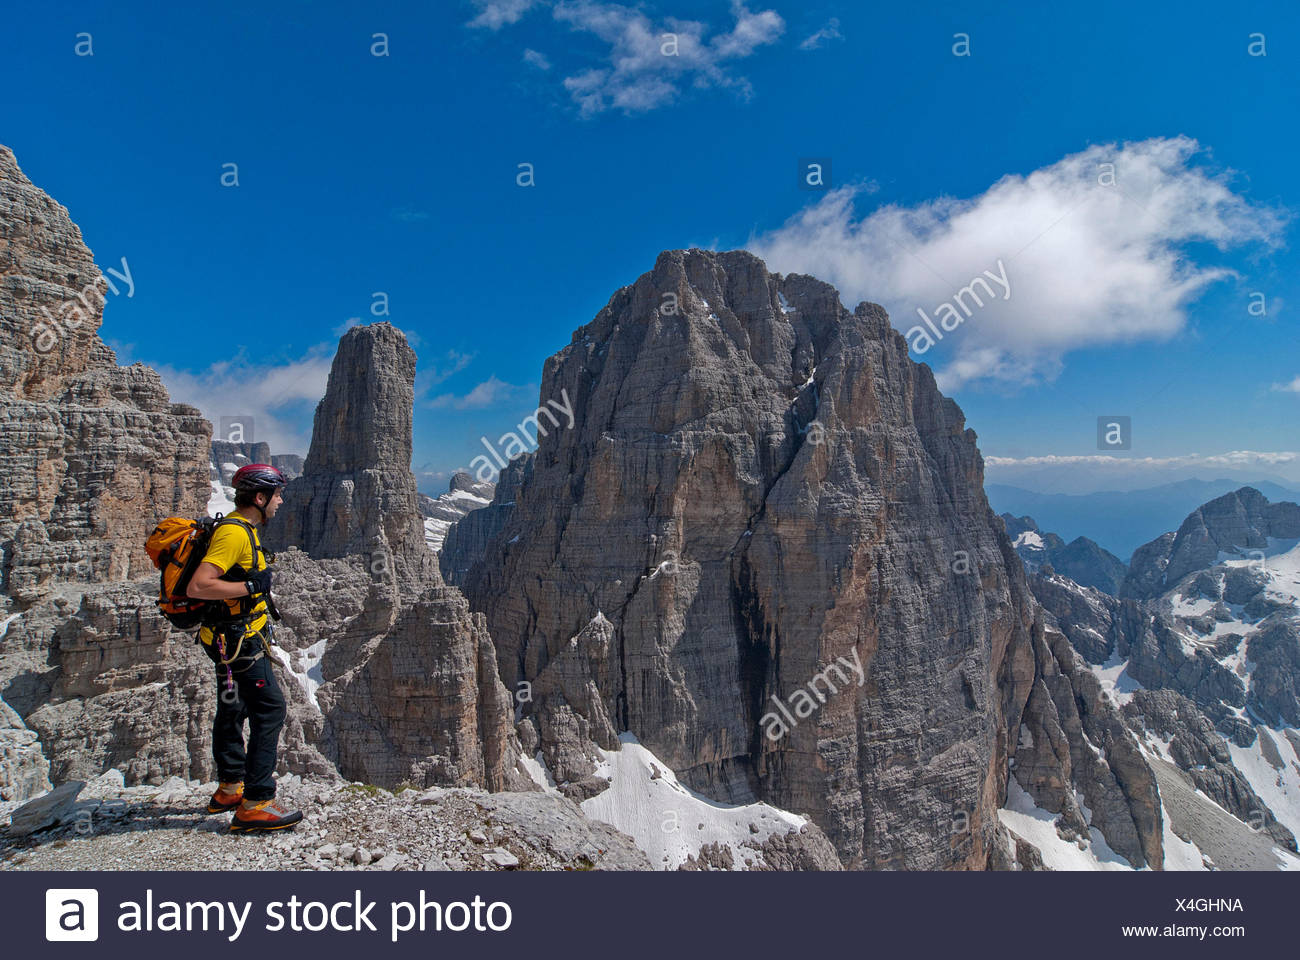 Brenta, Trentino, Italy. Climber on the via ferrata 'Sentiero delle Bocchette Centrali'. In the background the Cima Brenta Alta and the famous Campanile Basso - Stock Image